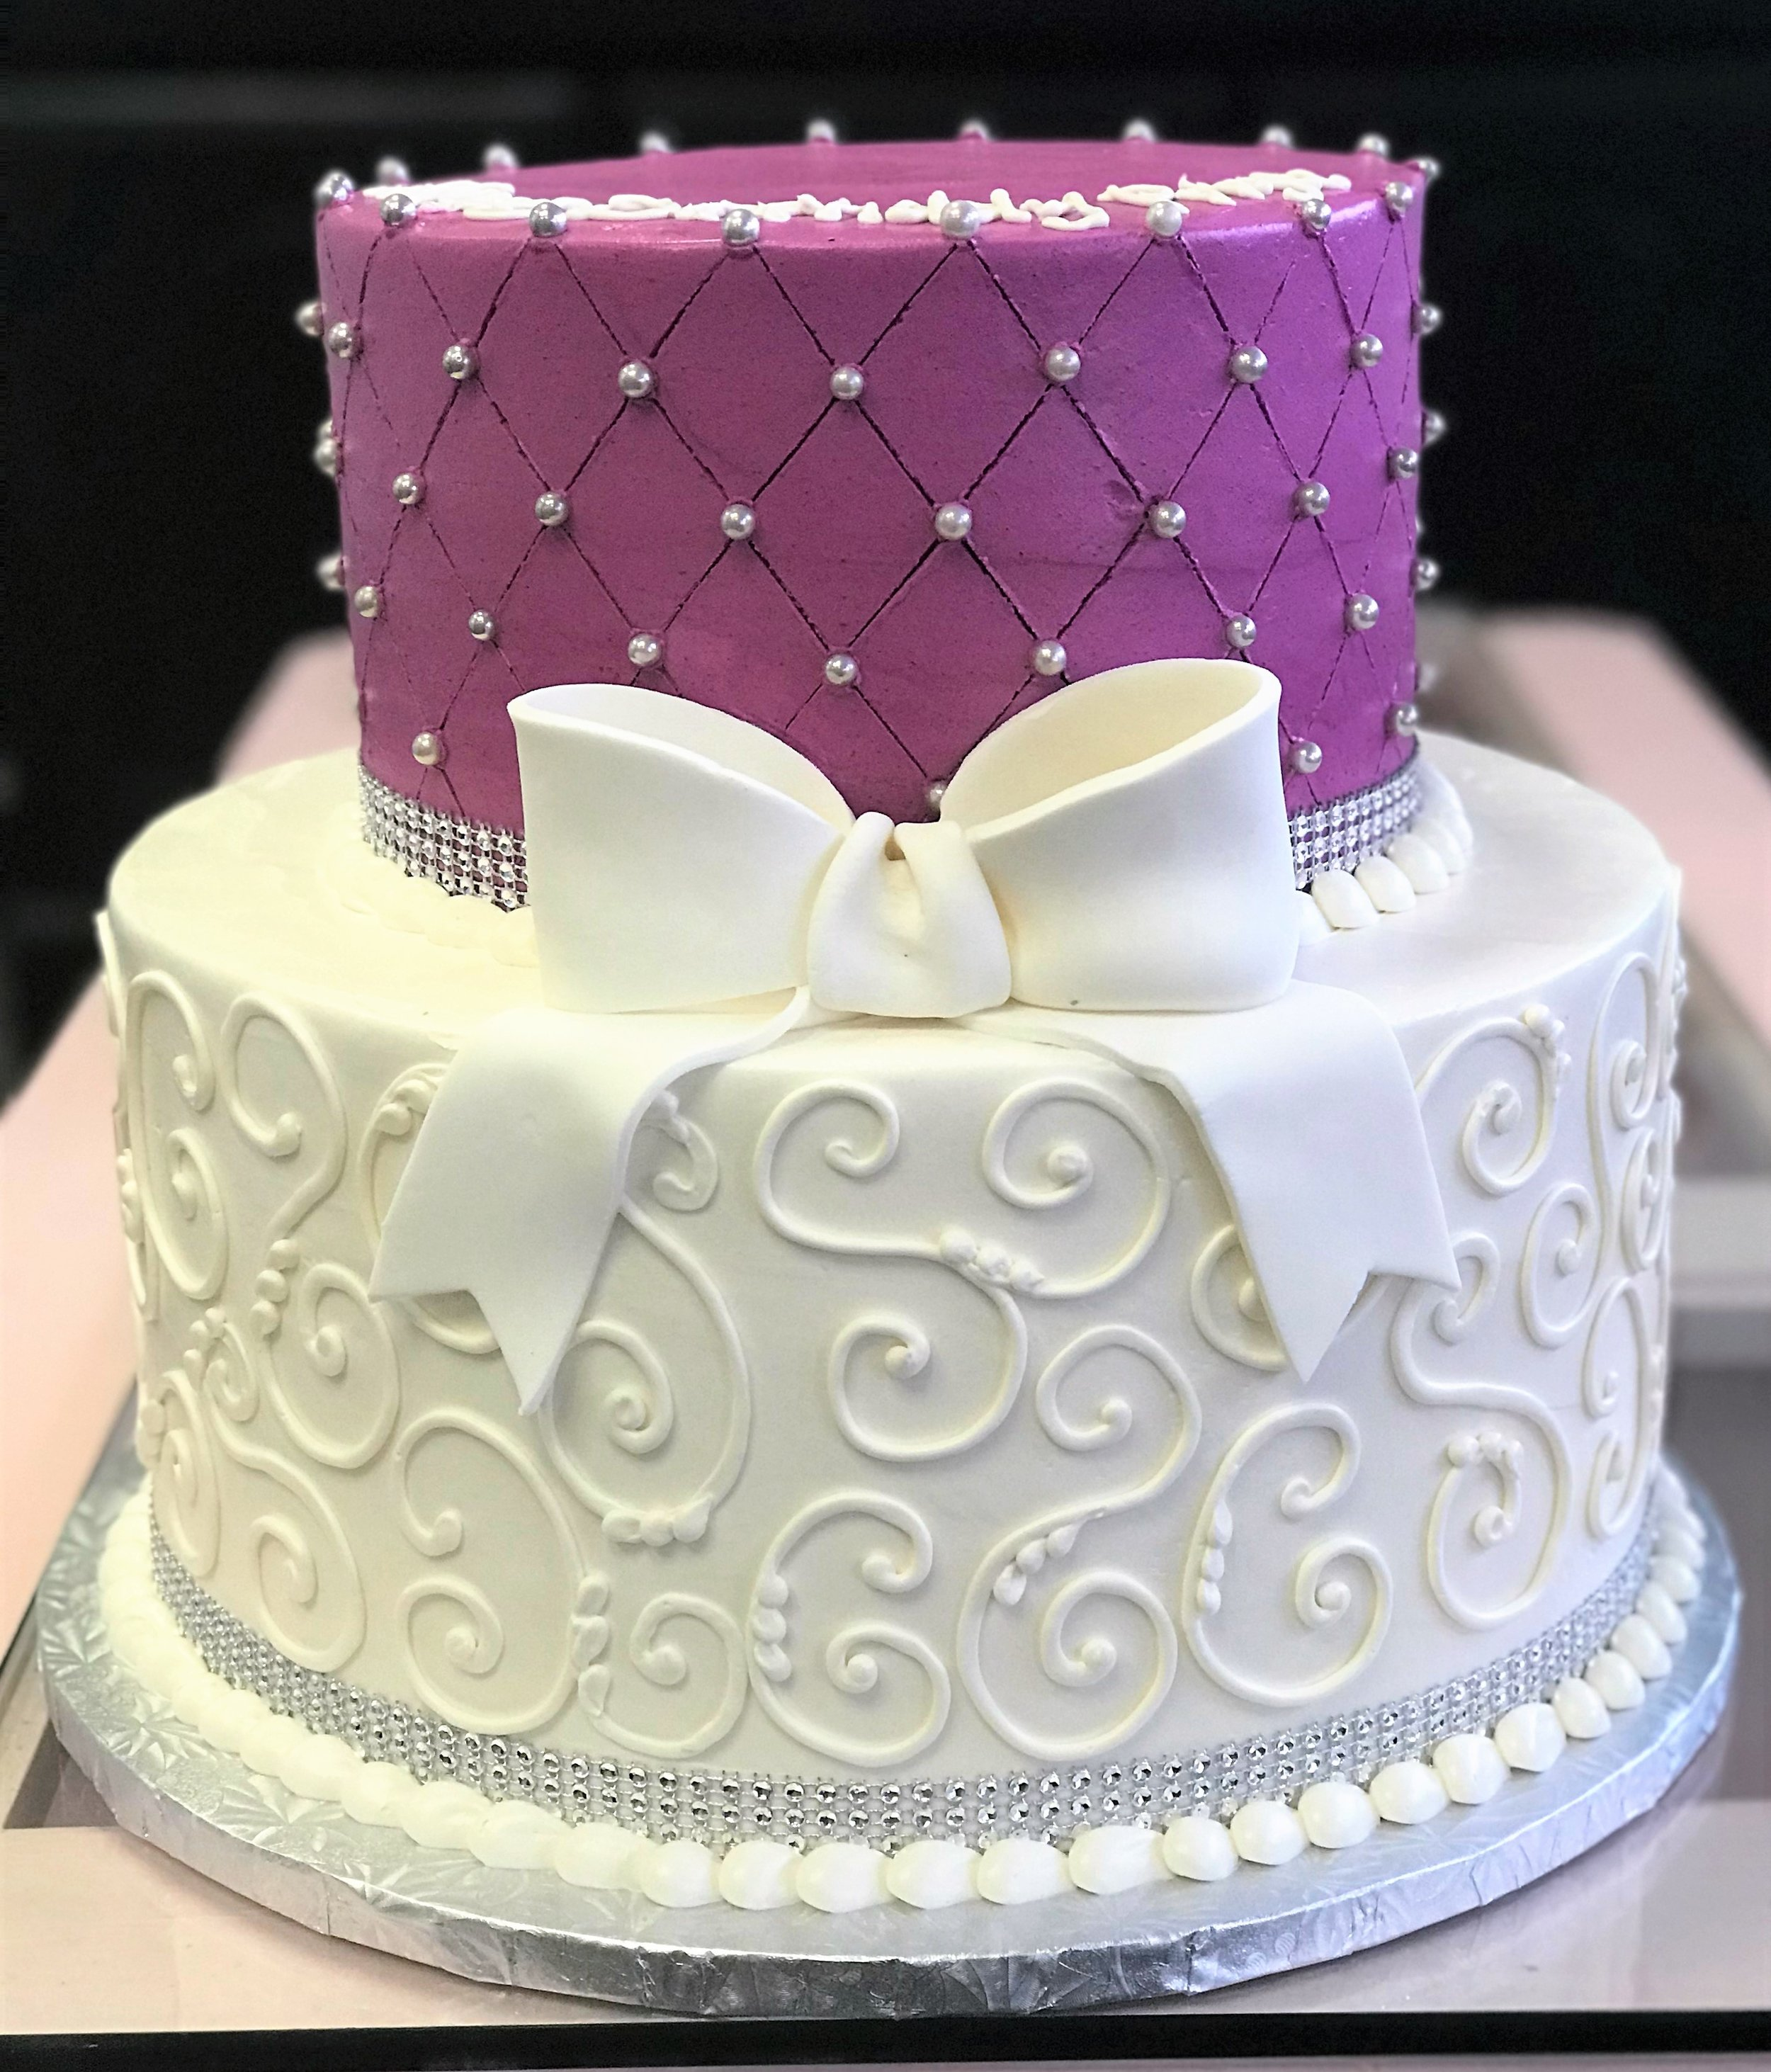 purple quilted cake with silver dragees.jpg